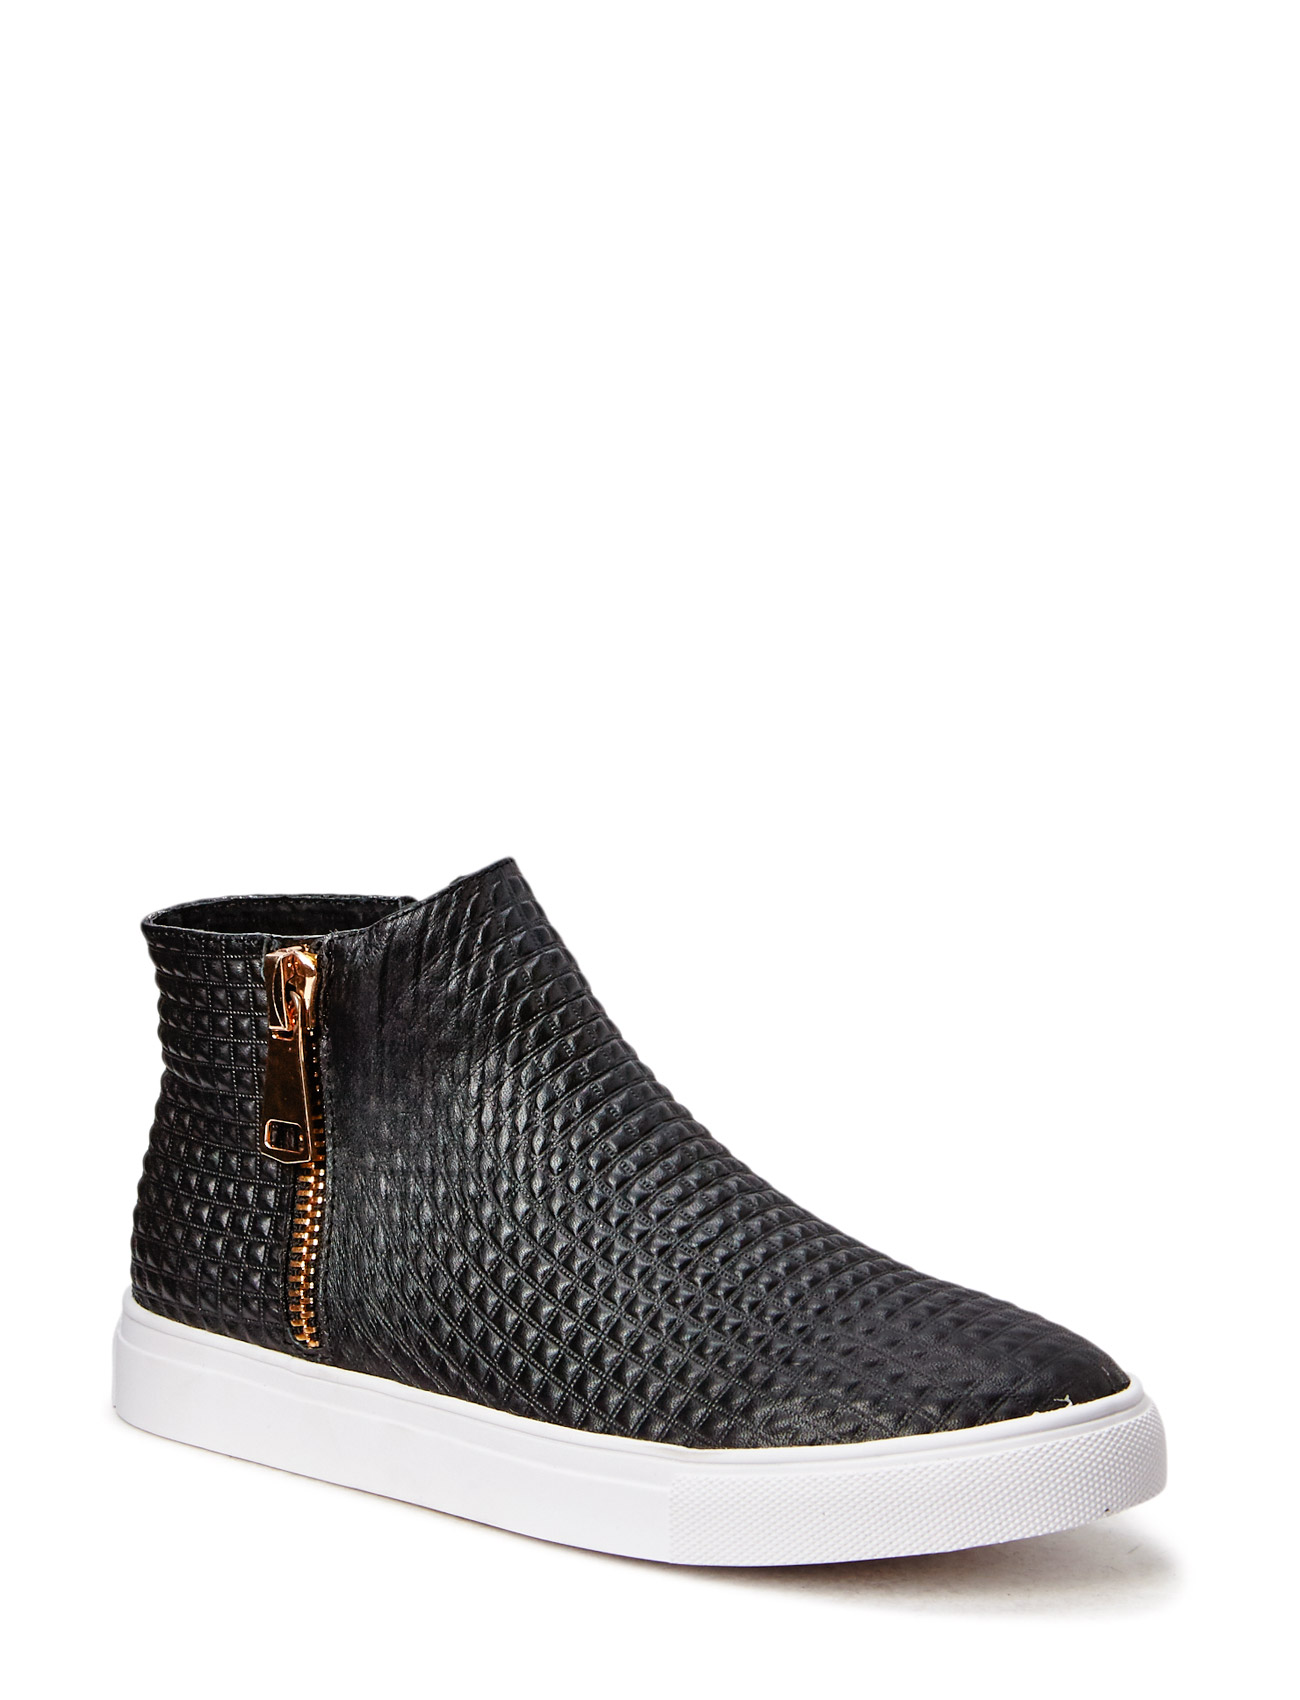 Rena Boot 12 Stylesnob Sneakers til Damer i Sort